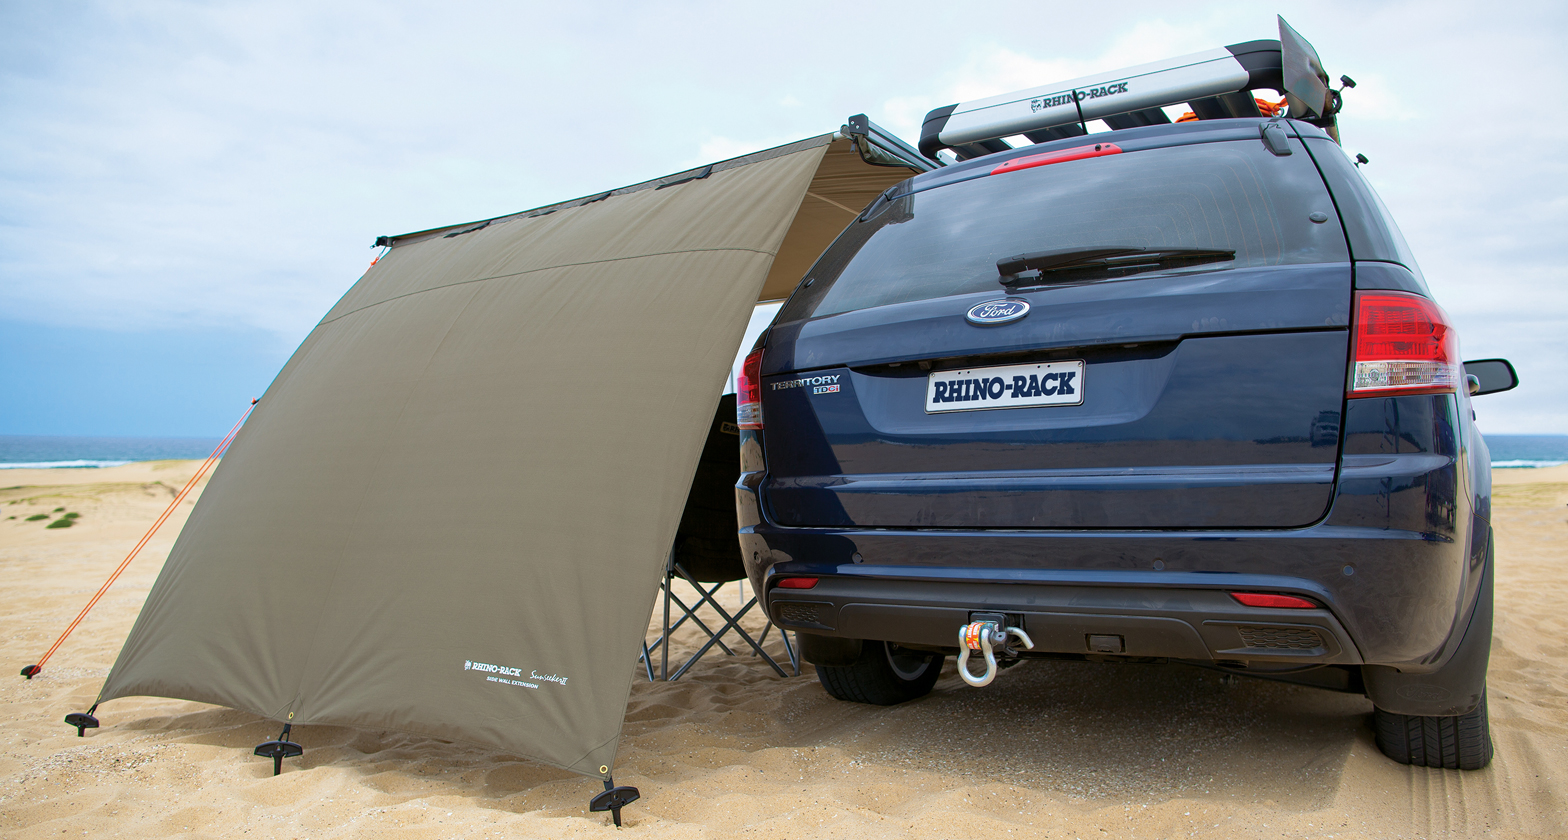 Roof Rack City RHINO RACK Sunseeker Awning Side Wall